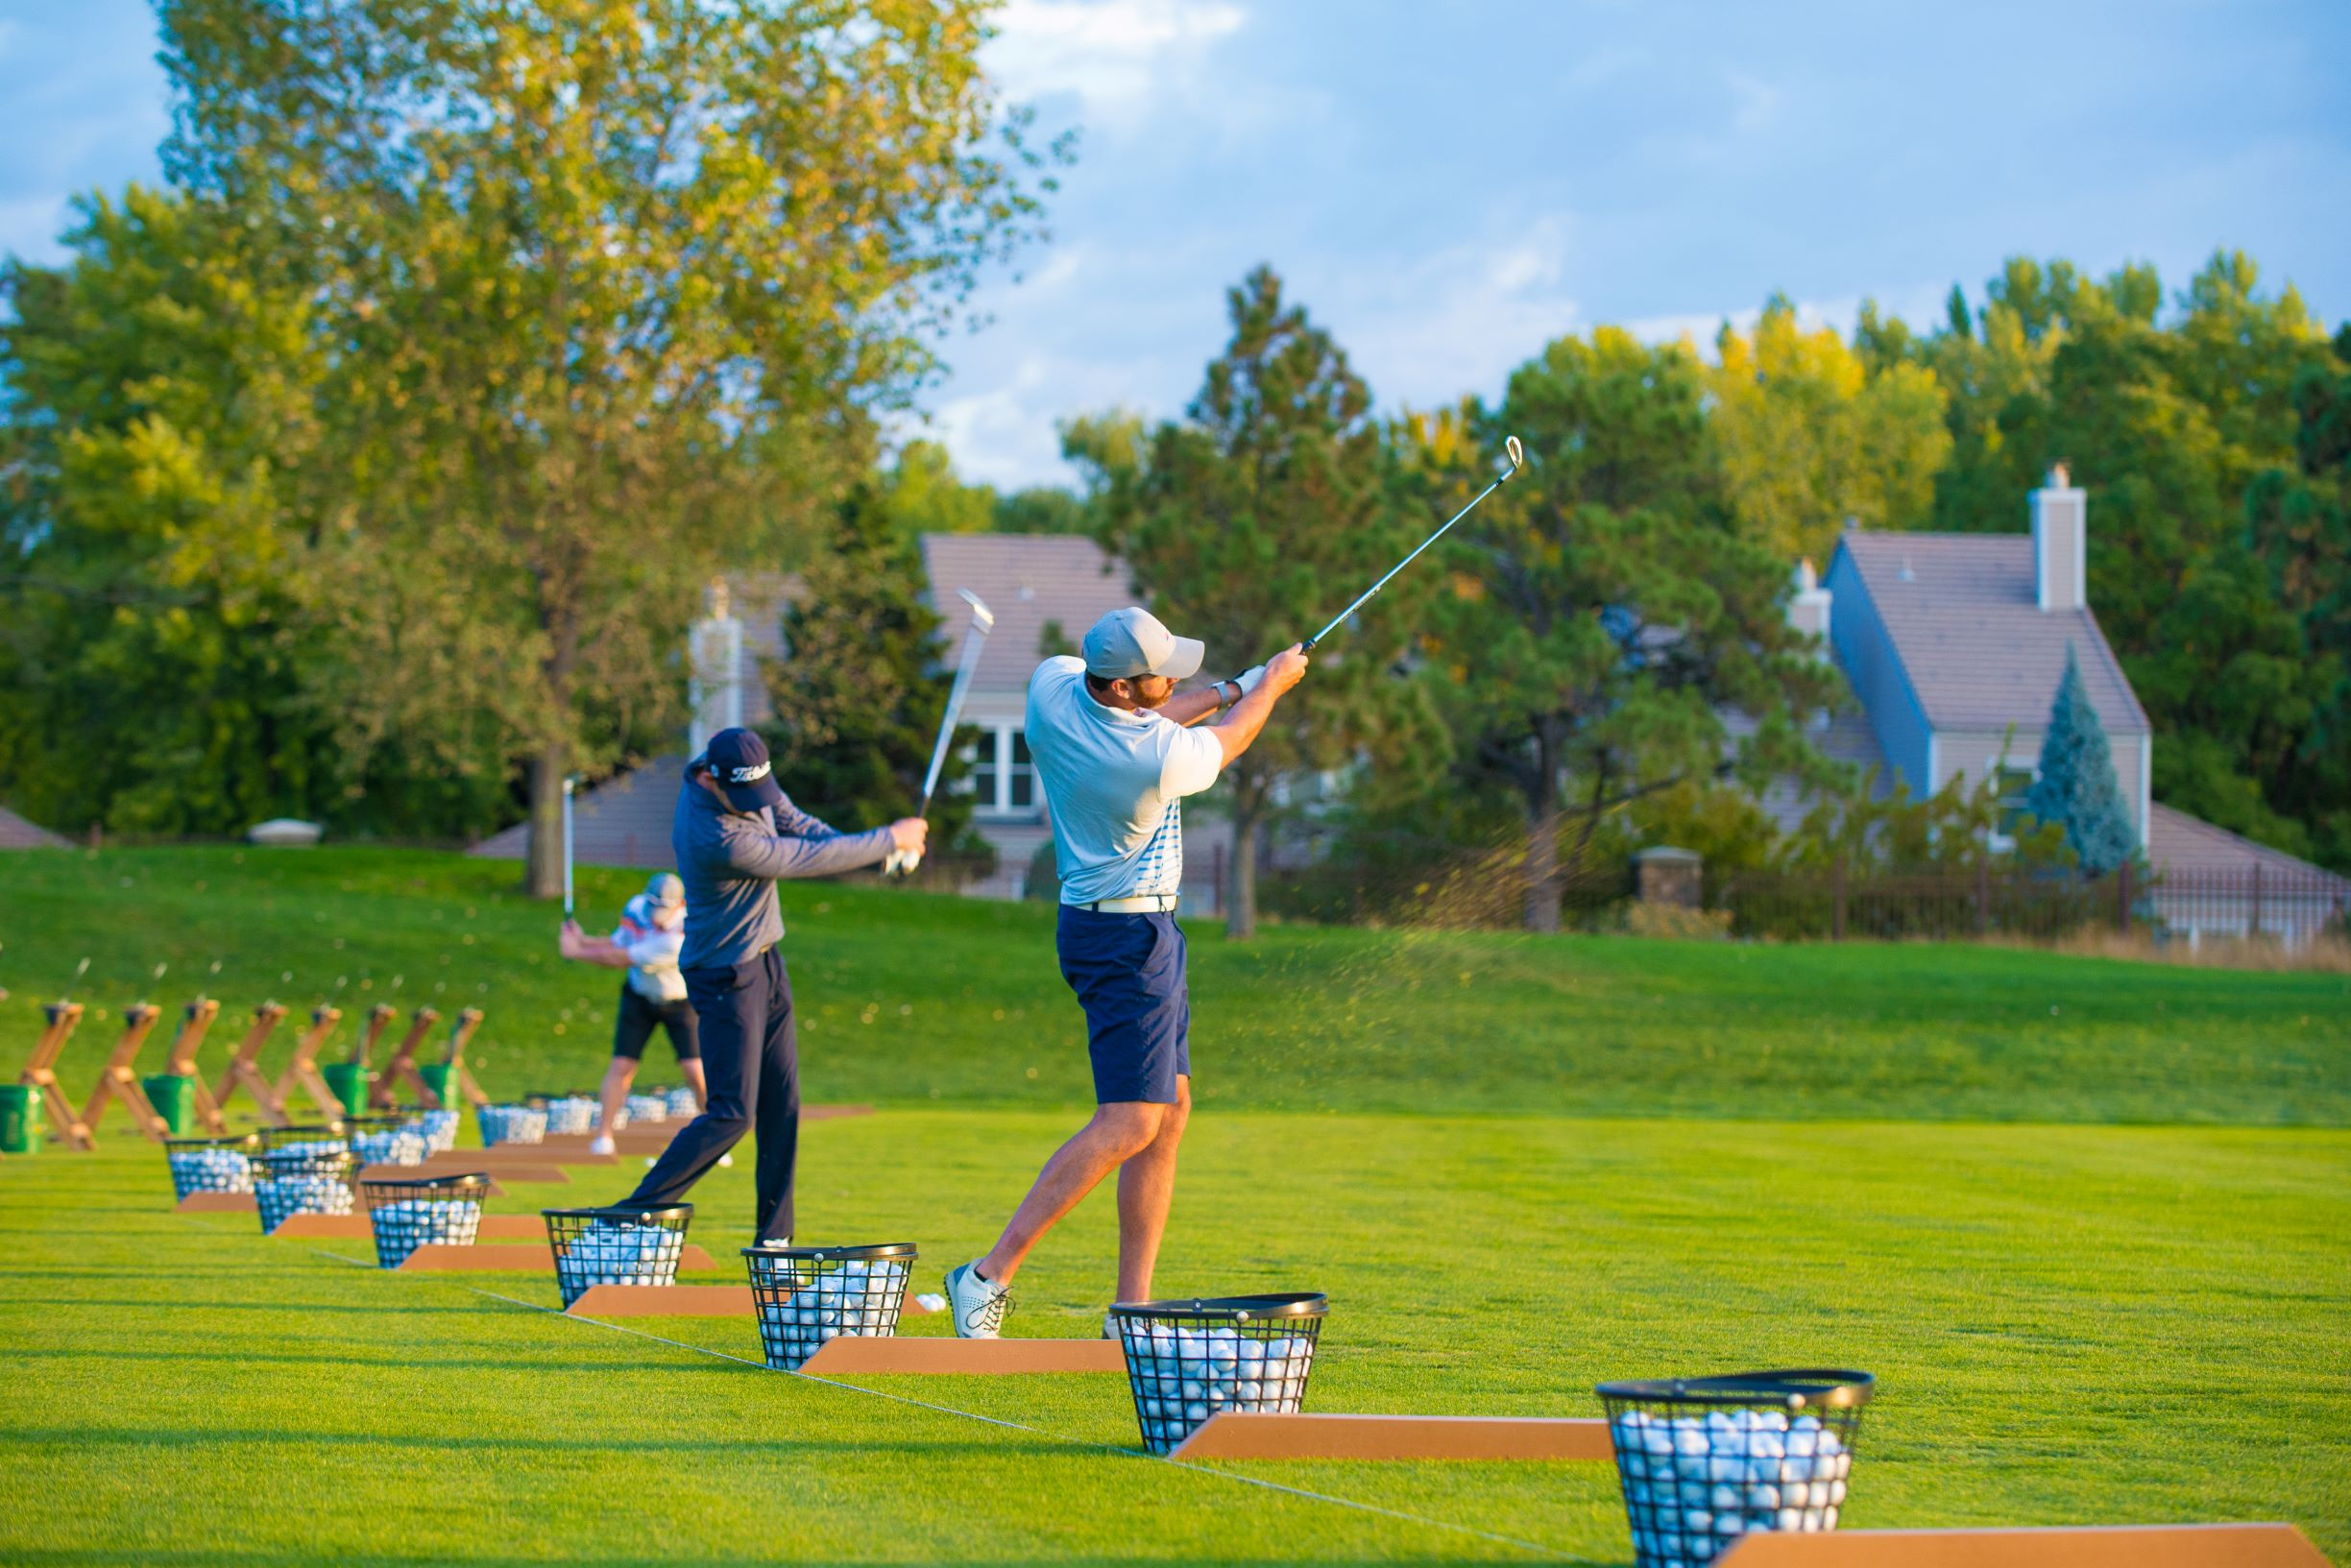 Register to Play - Whether you have a twosome or a larger group, we have multiple Patriot Golf Packages available, but spaces are limited. Register your group to play today!